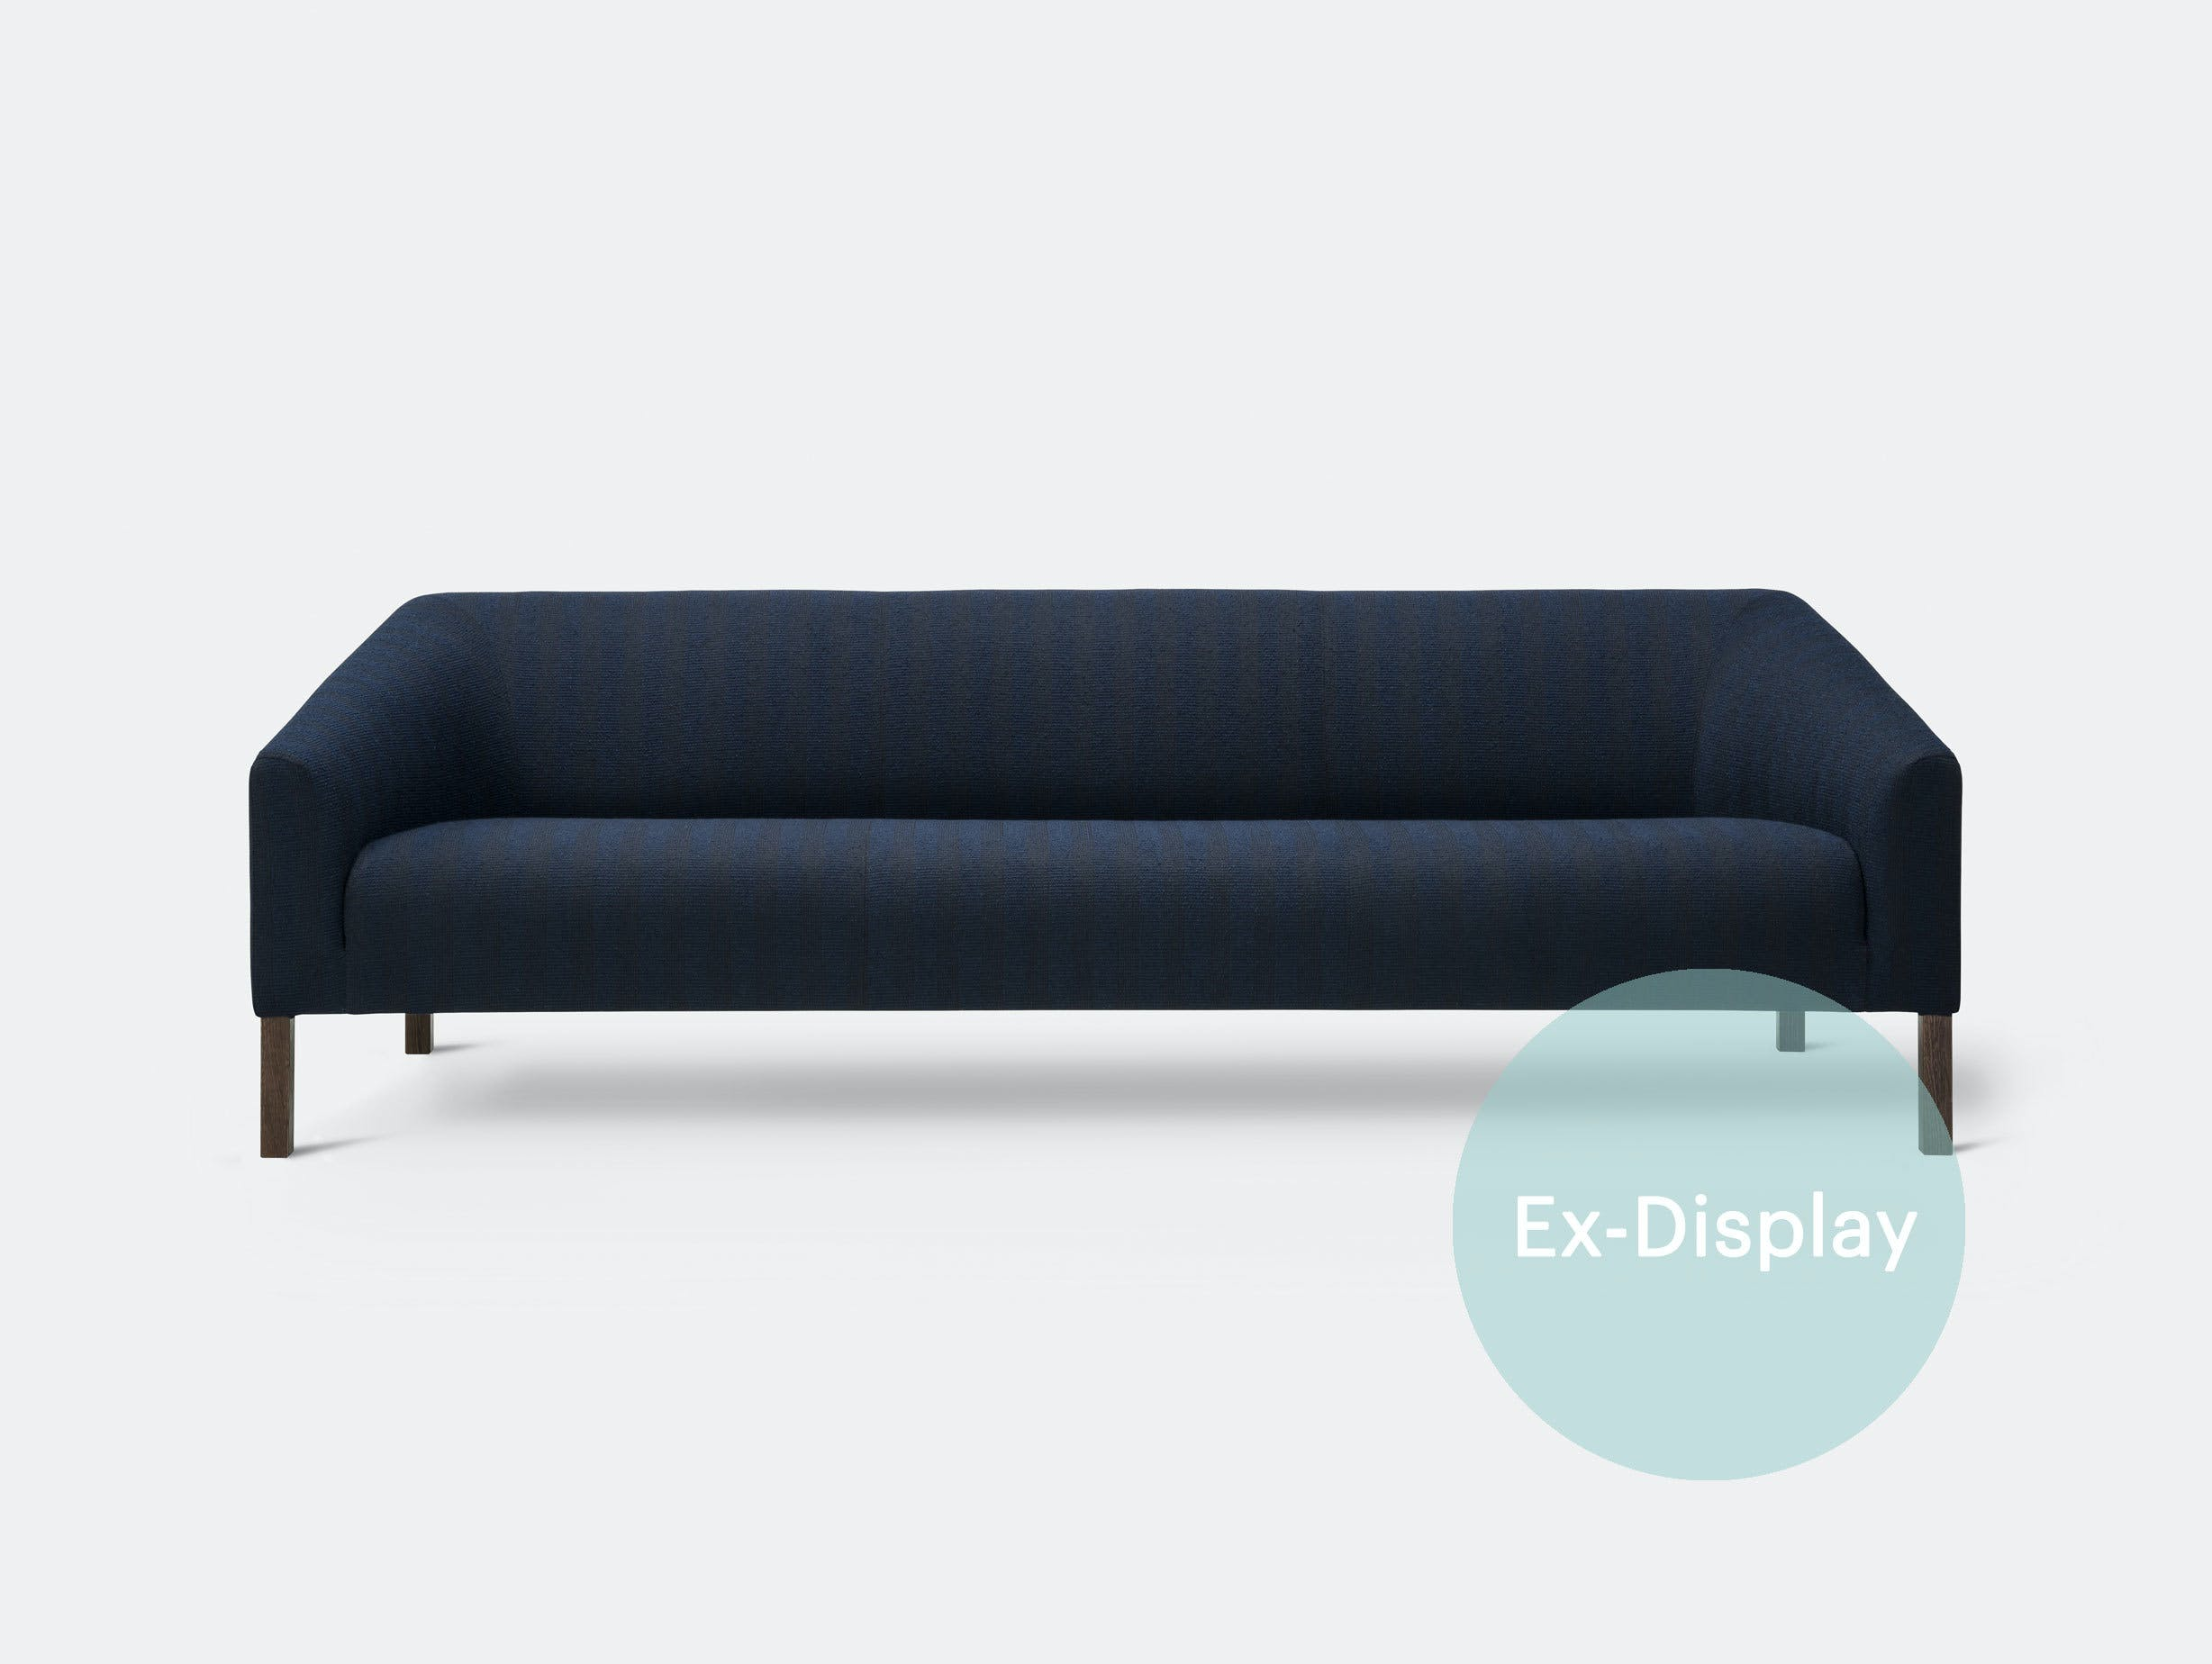 Kile Sofa / 38% off in our Summer Sale at £2950 image